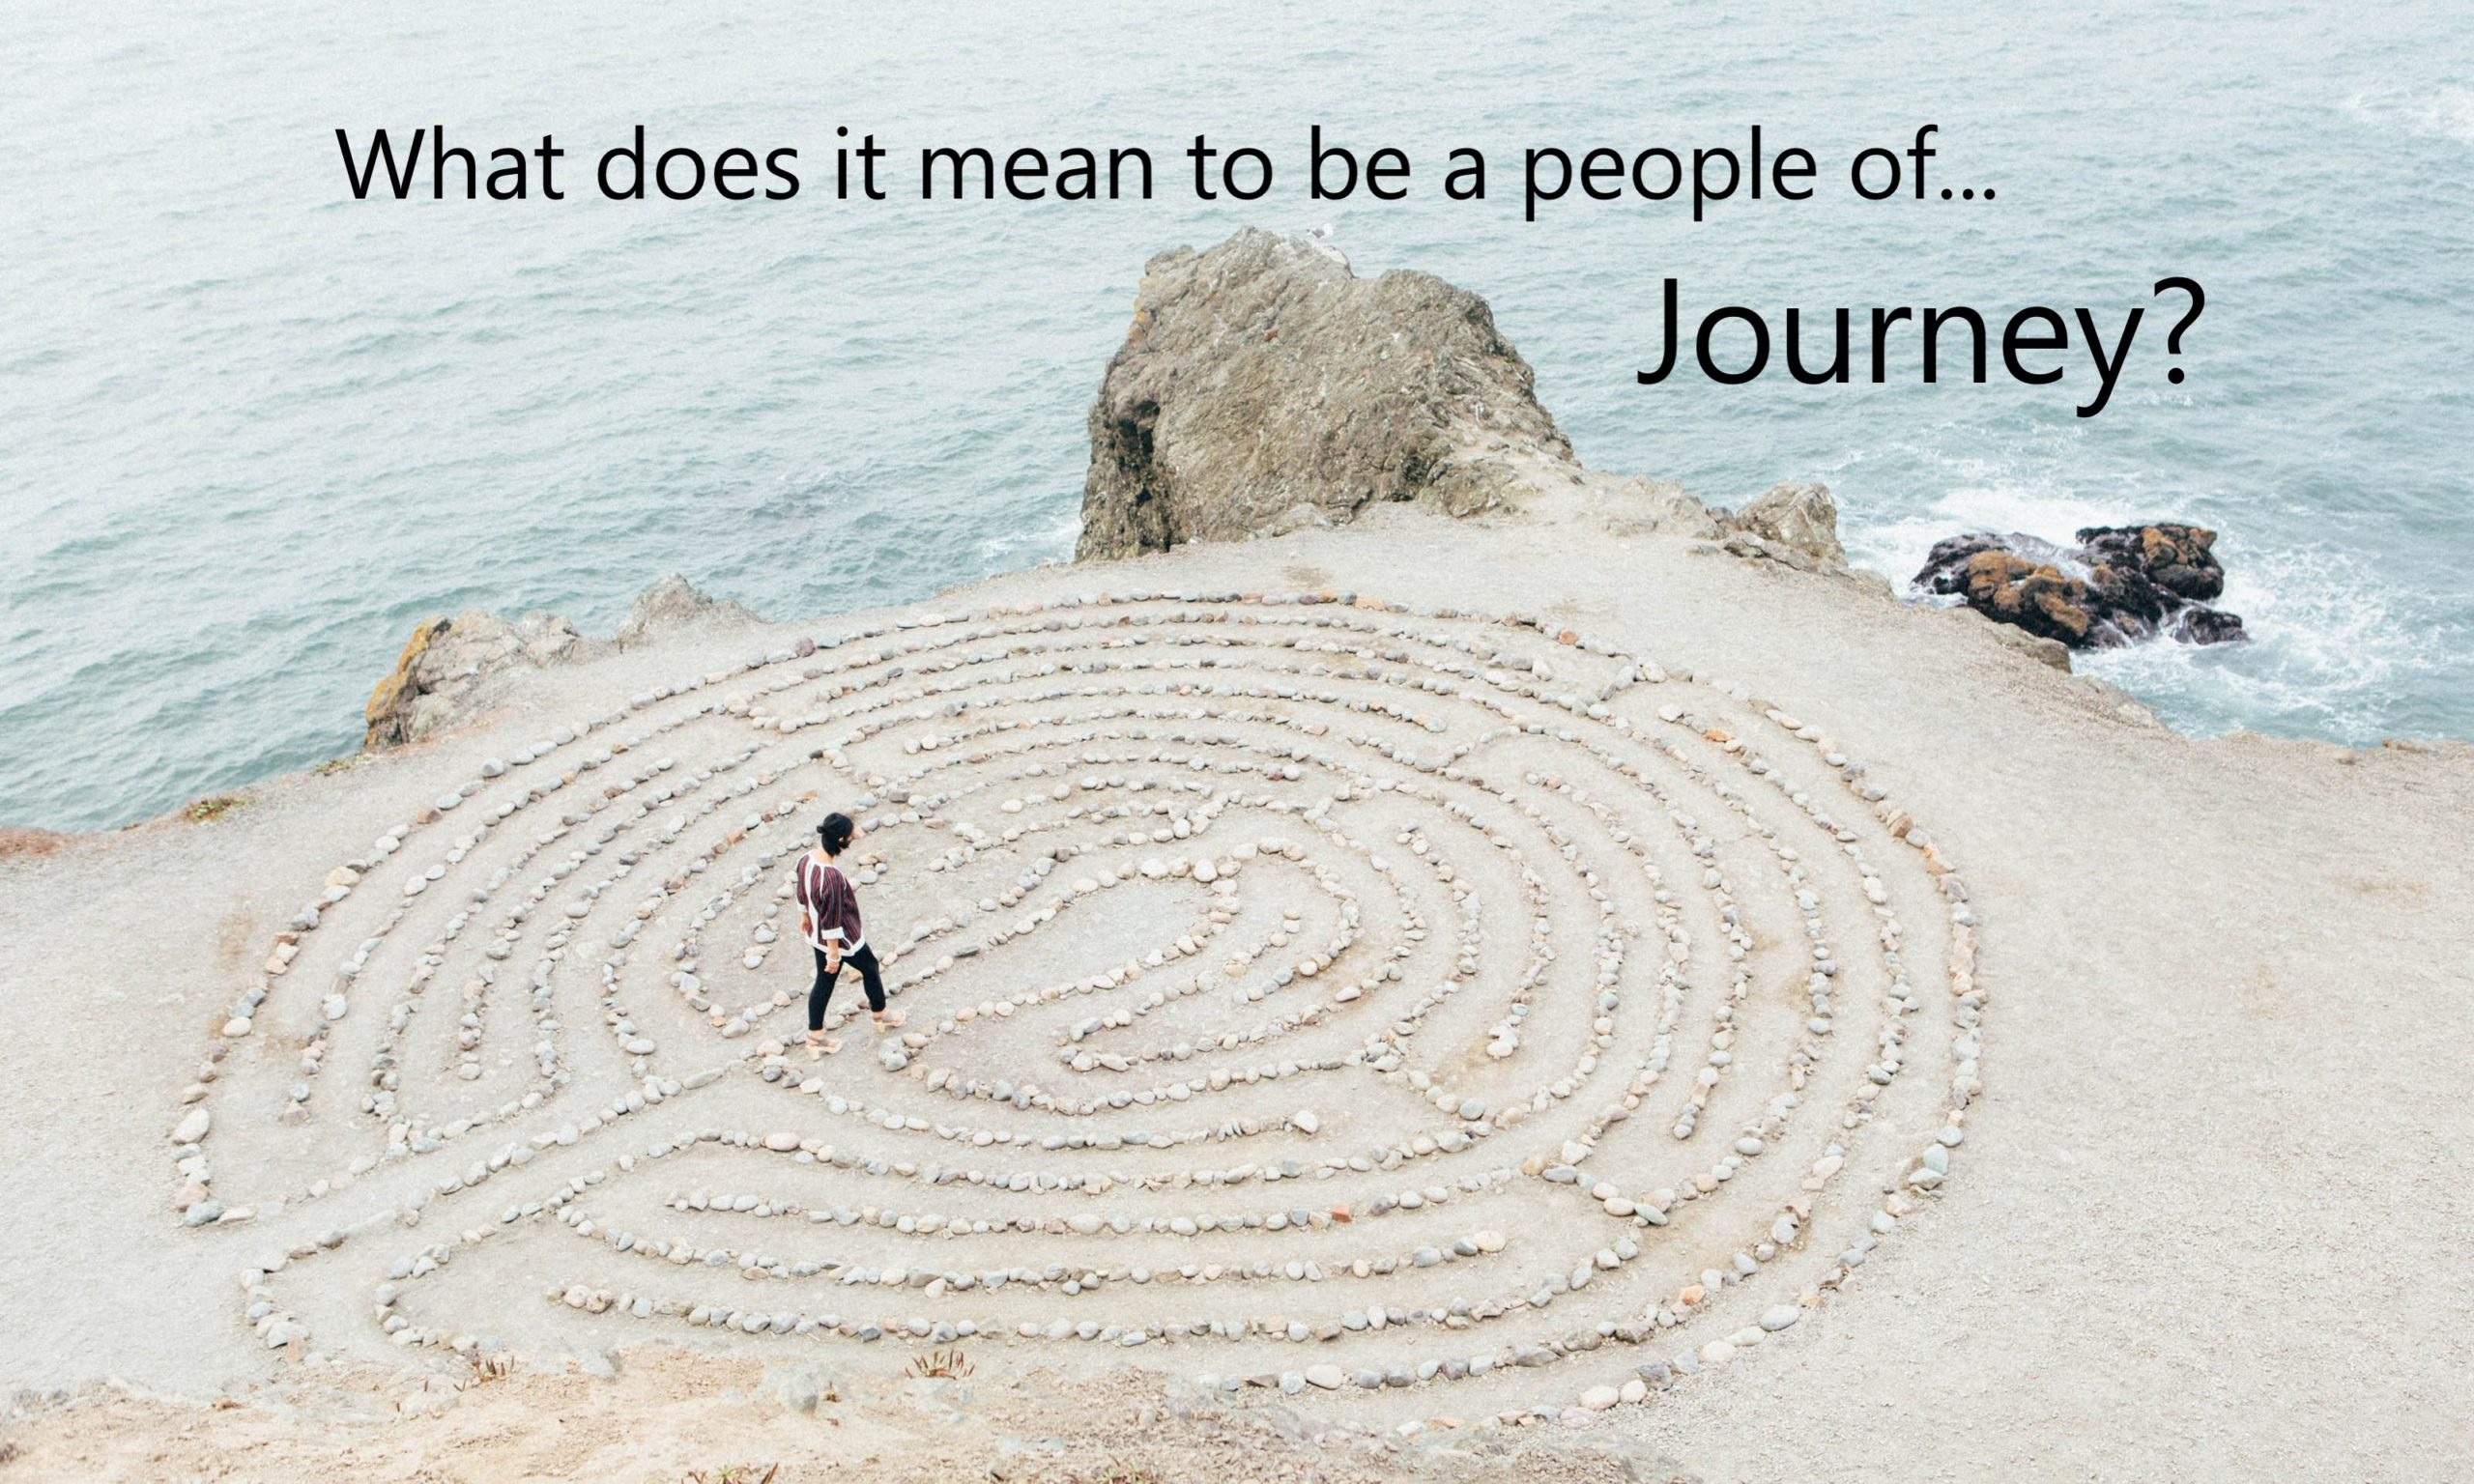 Labyrinth by the ocean, text: What does it mean to be a people of Journey?